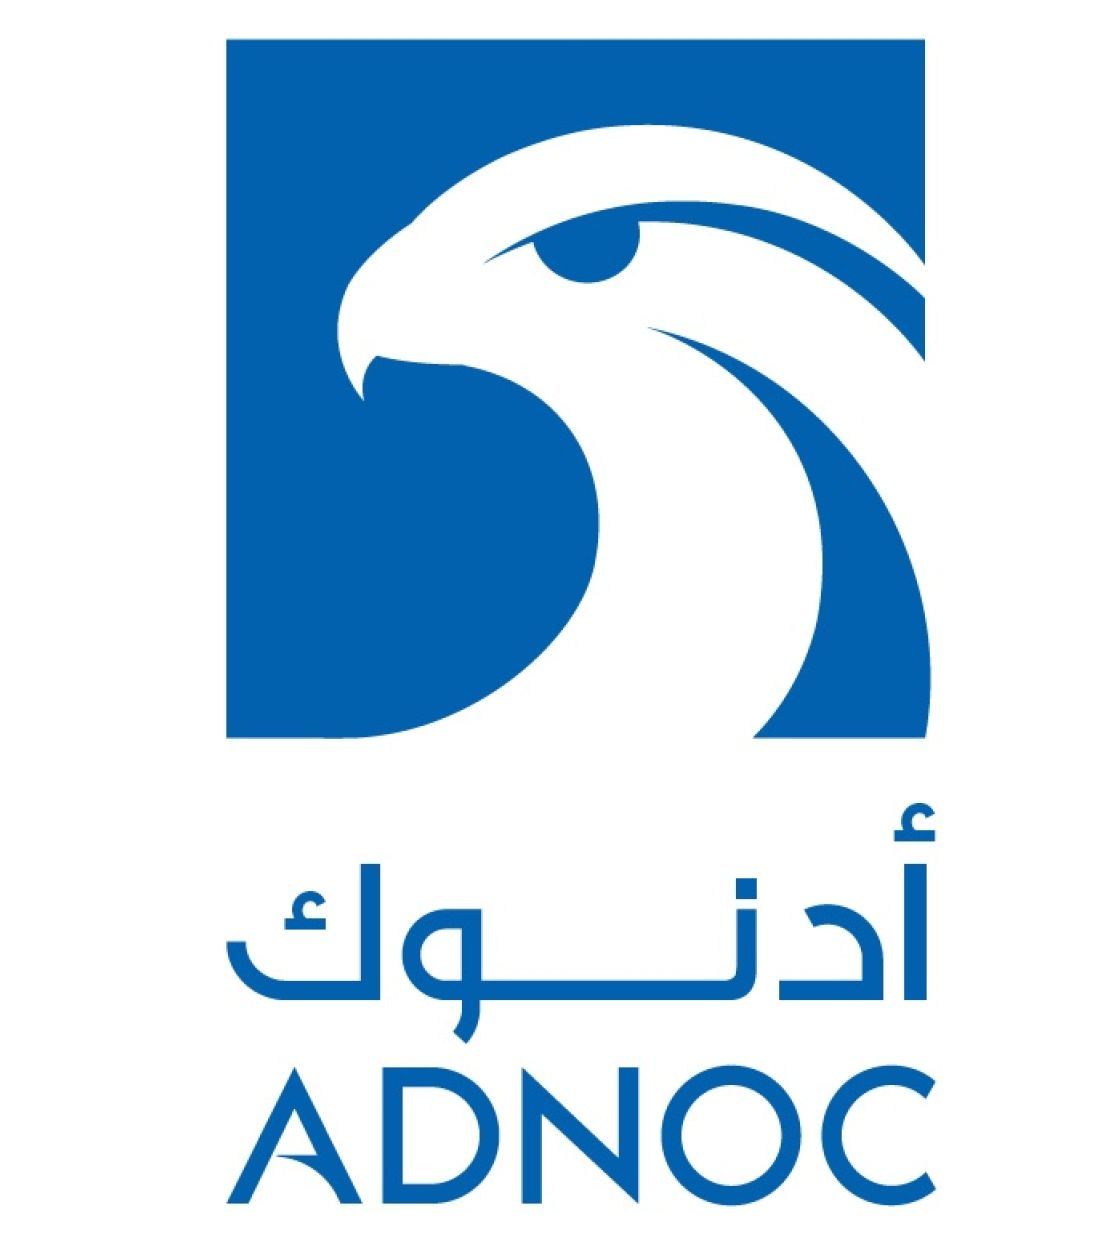 Abu Dhabi National Oil Company (ADNOC) - The Abu Dhabi National Oil Company or ADNOC is the state-owned oil company of the United Arab Emirates (UAE).Today, we continue to look for new and innovative ways to maximize the value of our resources, pioneering those approaches and technologies that will ensure we are able to meet the demands of an ever-changing energy market, and continue to have a positive impact on the Abu Dhabi economy for generations to come.